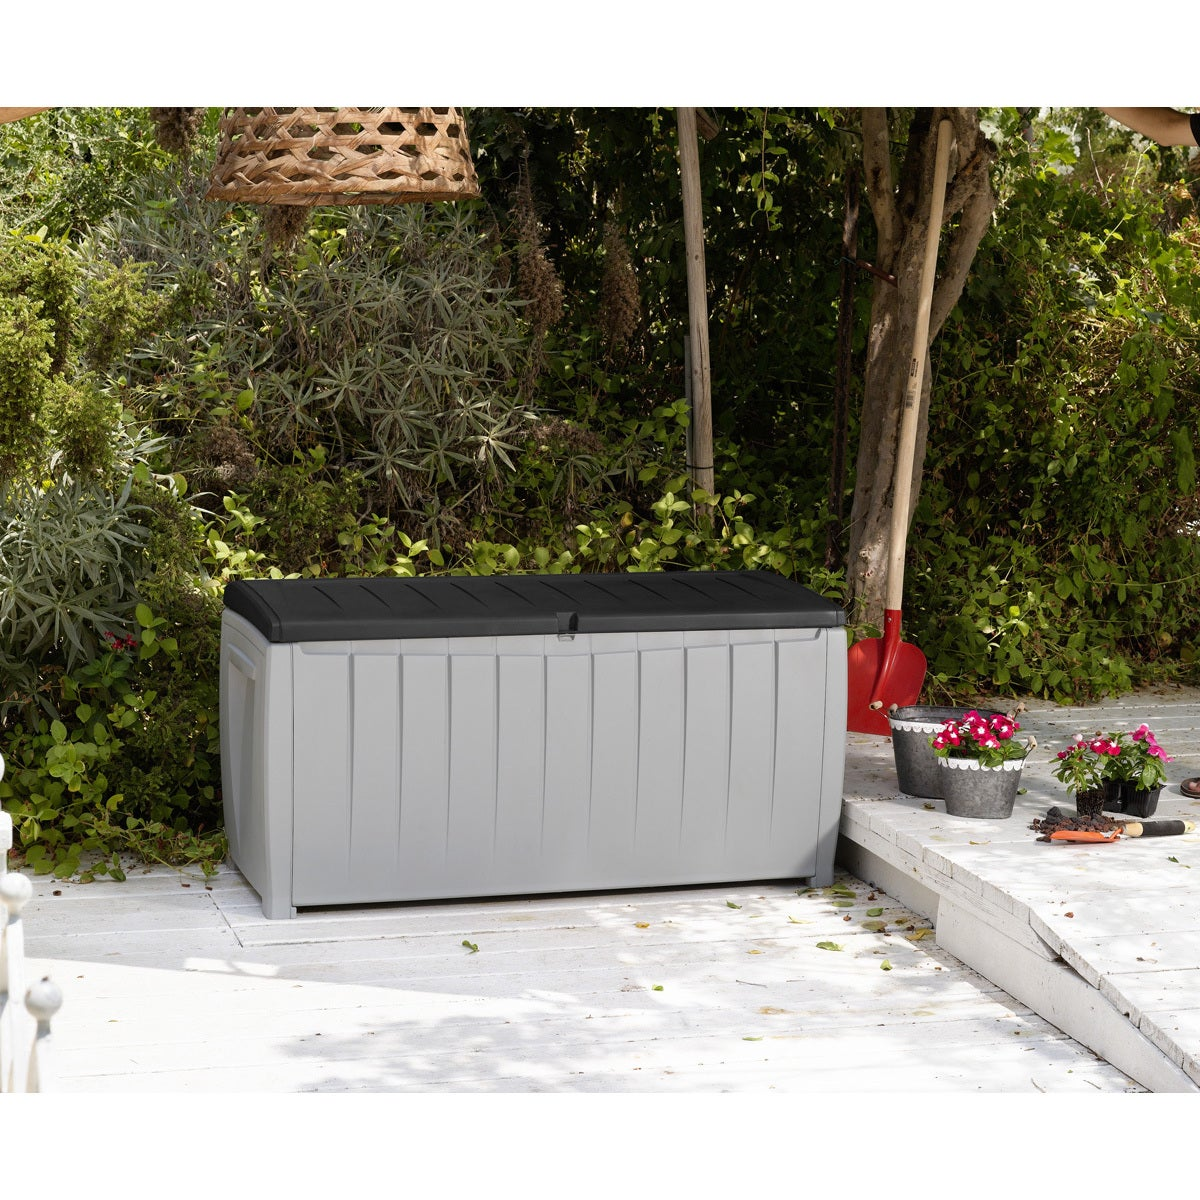 Charming Keter Novel 90 Gallon Black And Grey Plastic Deck Storage Box   Free  Shipping Today   Overstock   19140500